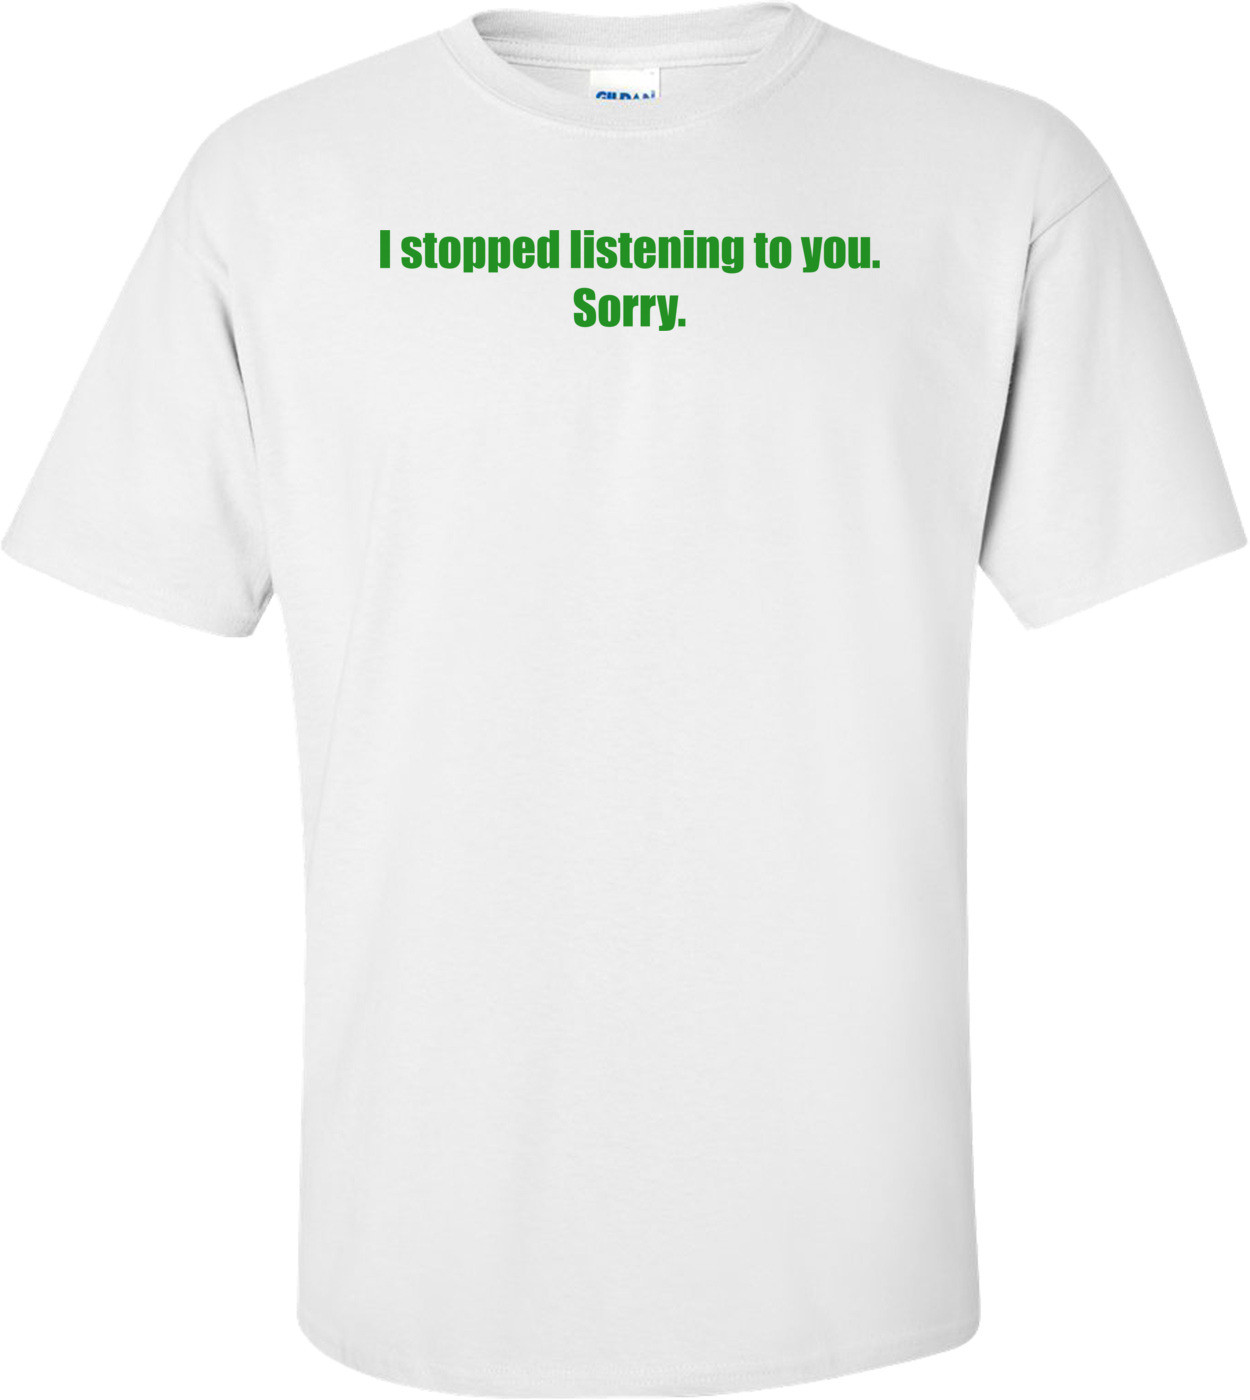 I stopped listening to you. Sorry. Shirt